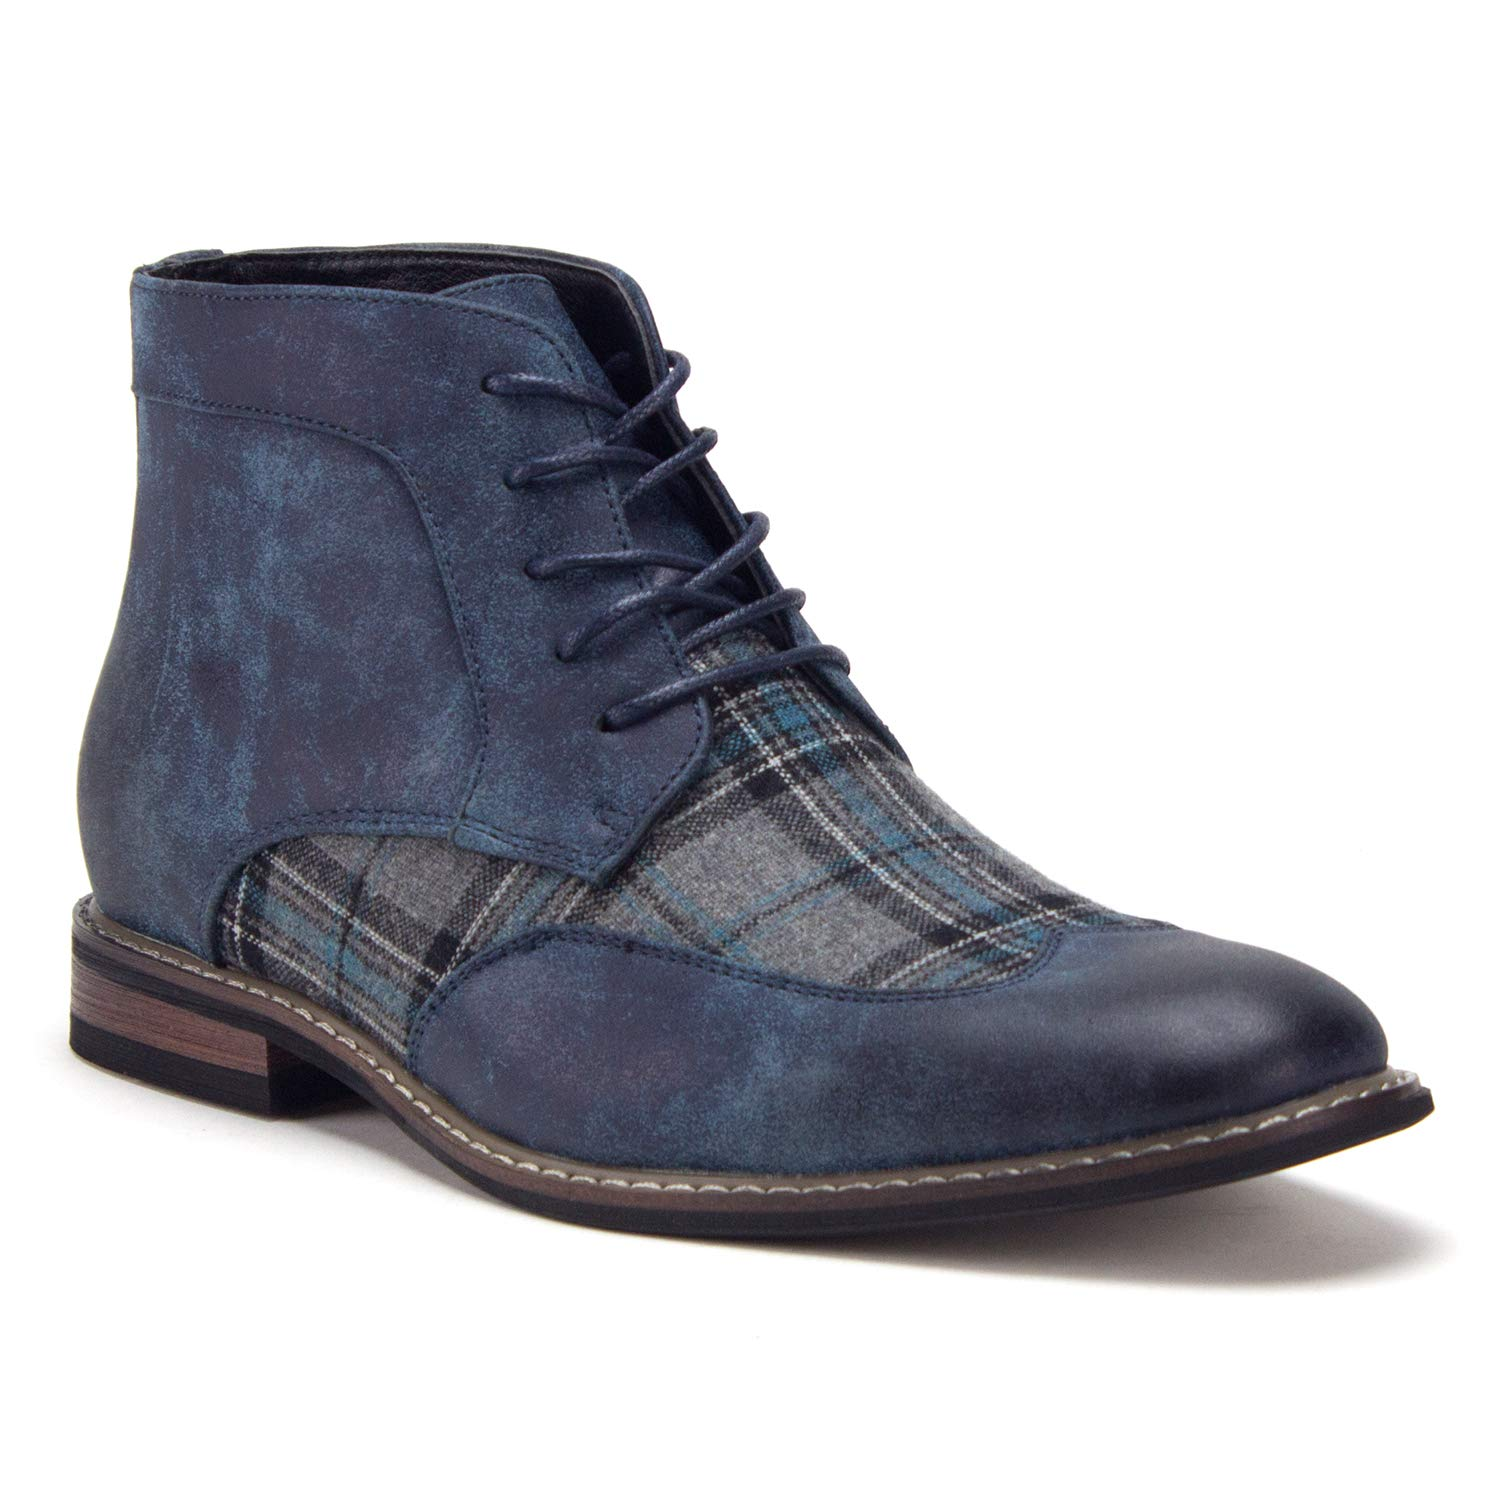 Jazame Men's Plaid Design Wing Tip Ankle High Lace Up Dress Boots, Navy, 9